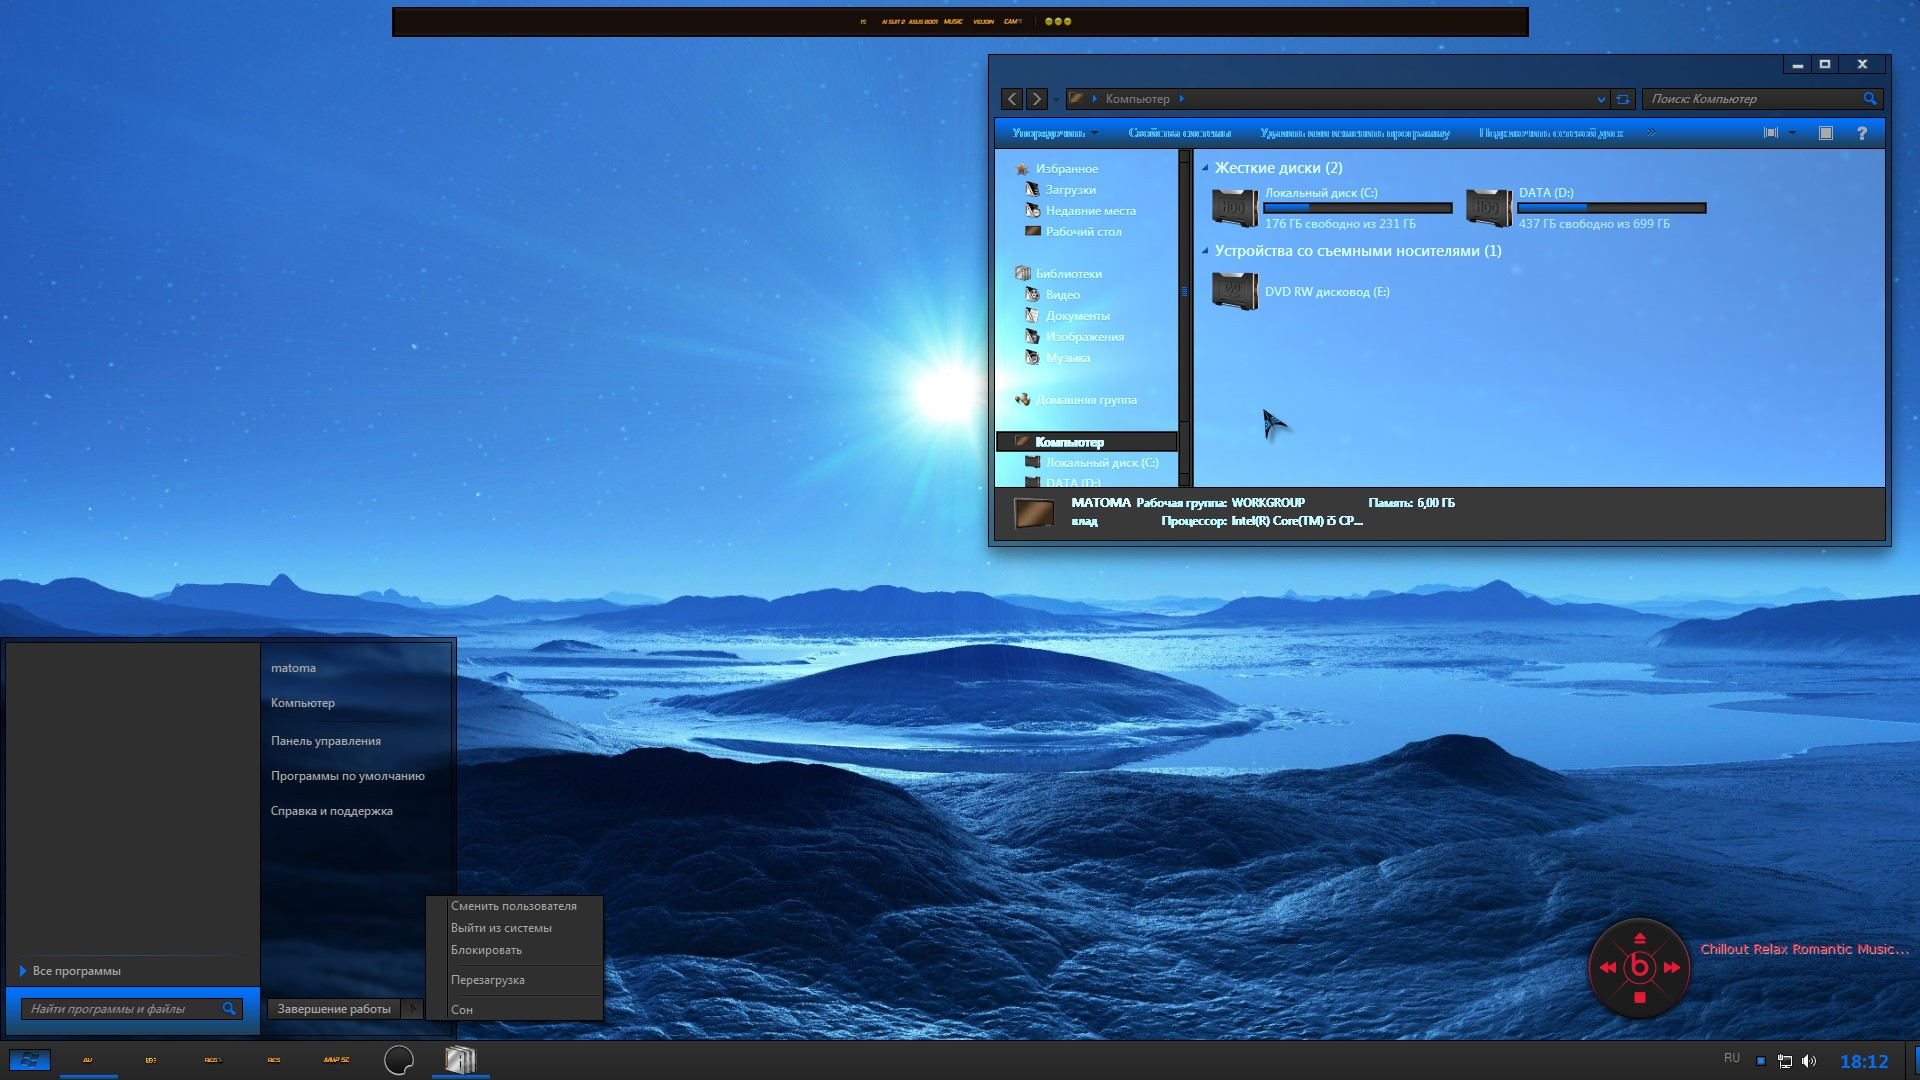 BLUEISH Windows 7 Theme By Tornado